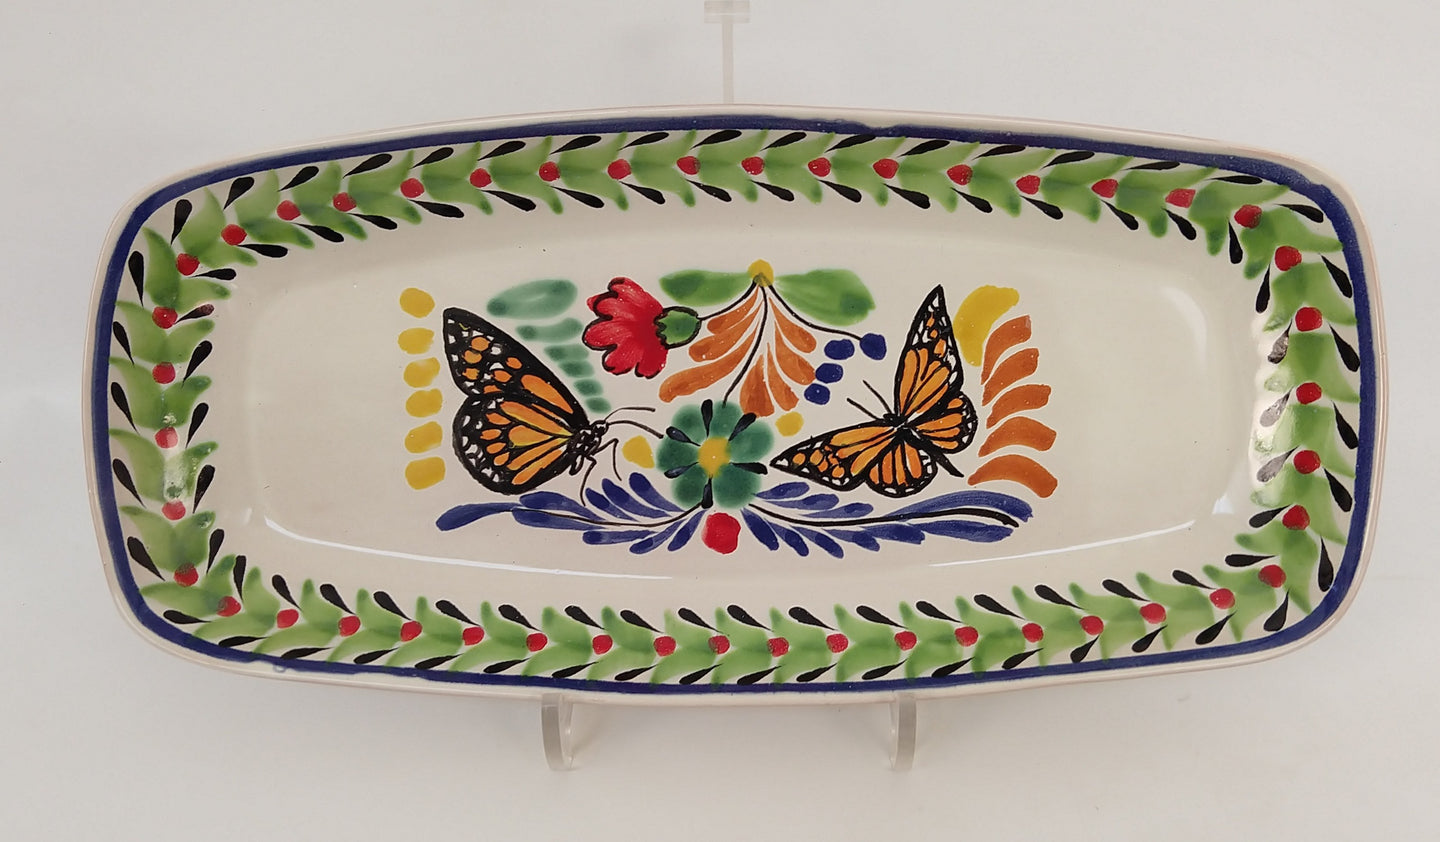 Butterfly Tray Mini Rectangular Platter 7.1 X 14.6